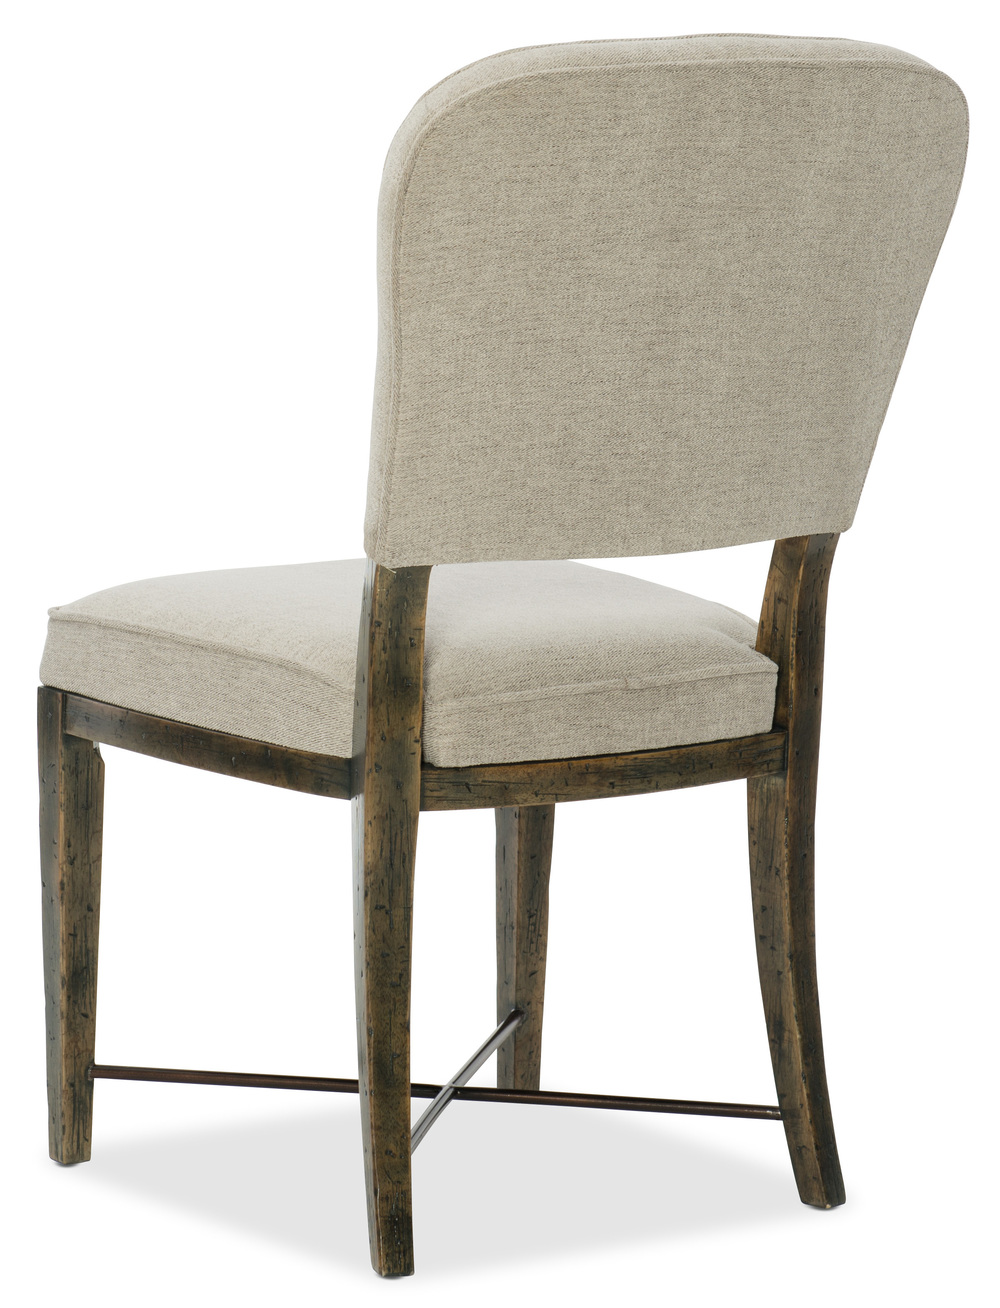 Hooker Furniture - Upholstered Side Chair